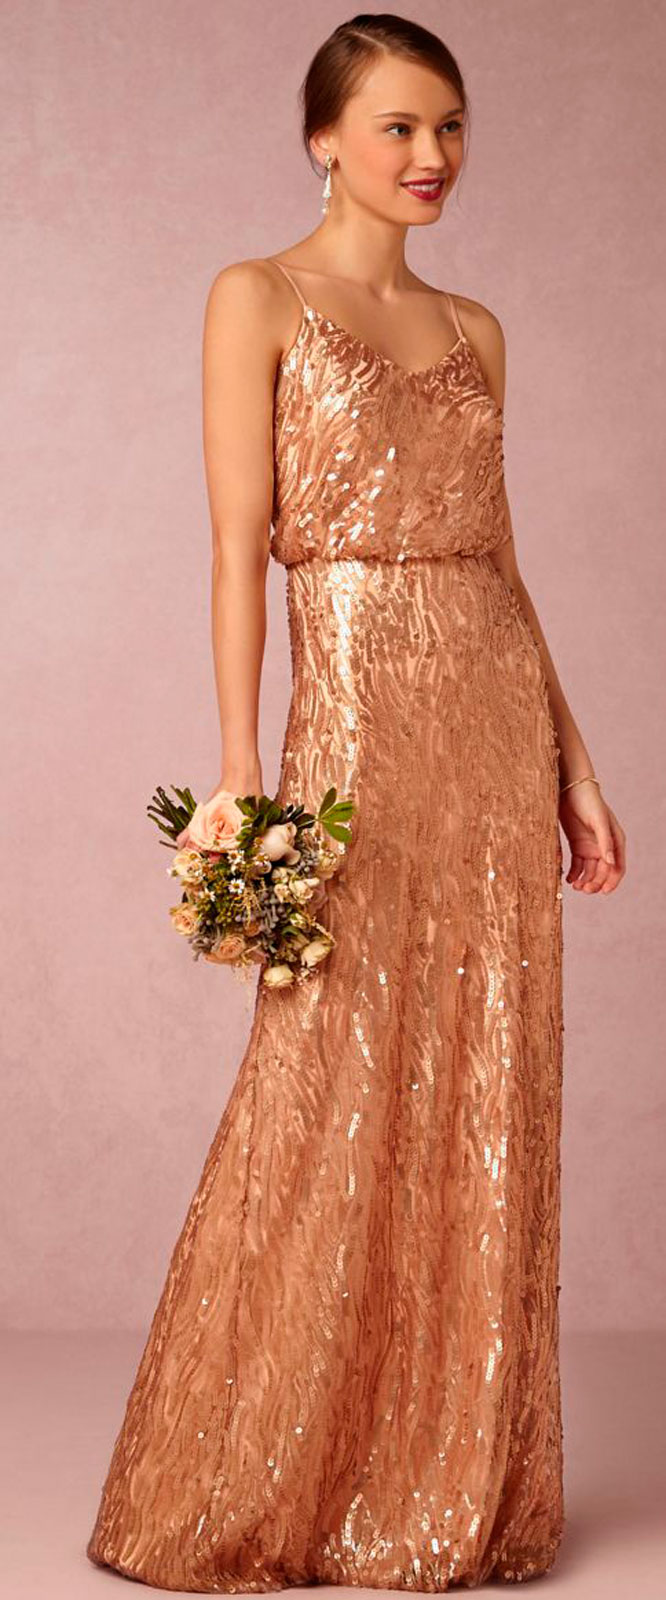 Harsanik Rose Gold And Copper Wedding Trend